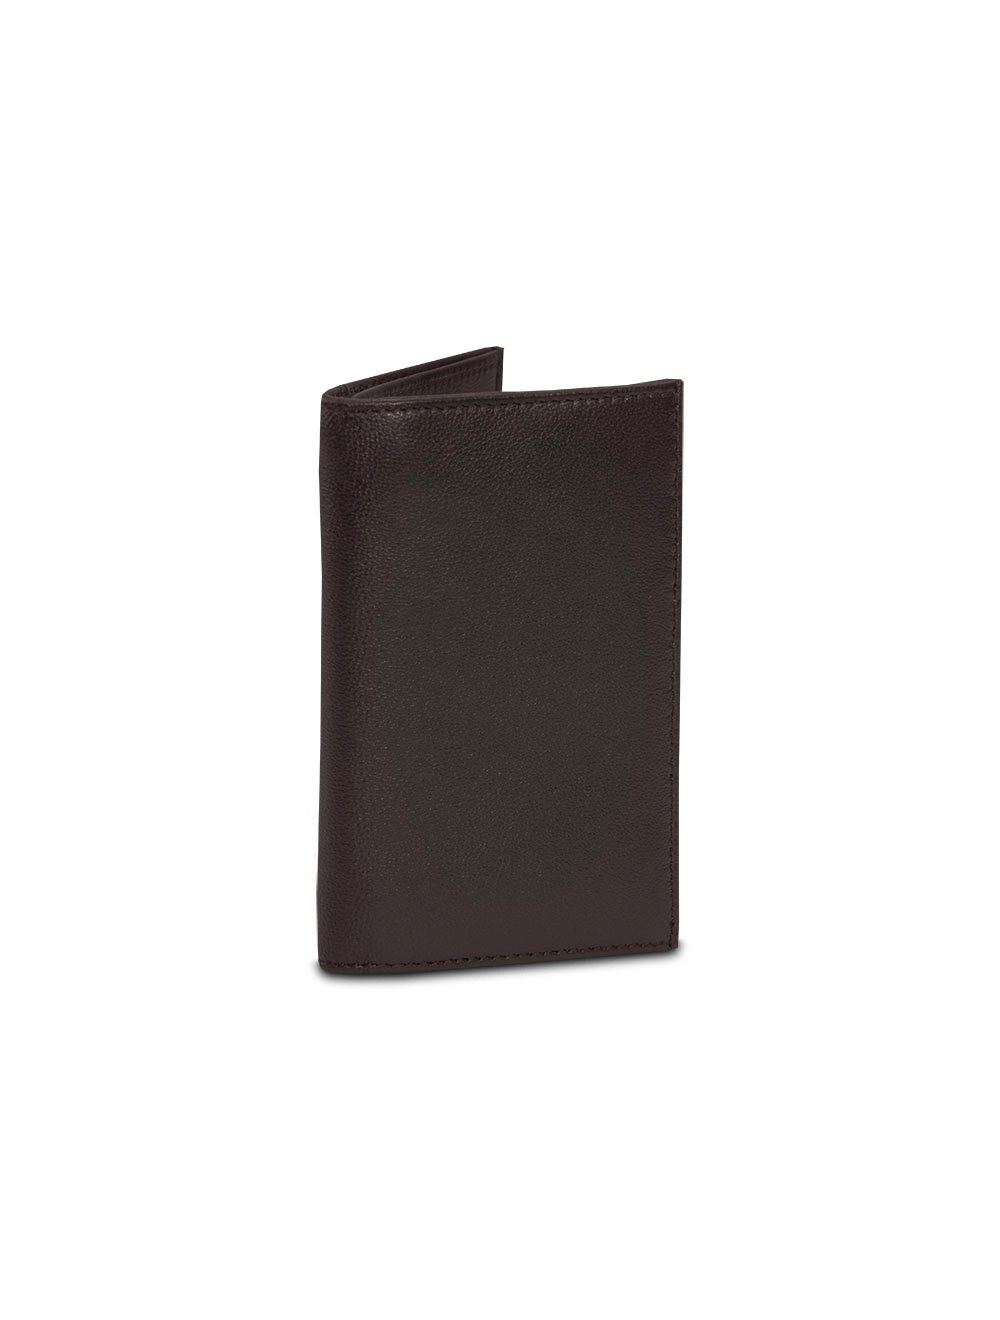 Double Business Card And Credit Card Holder - Brown